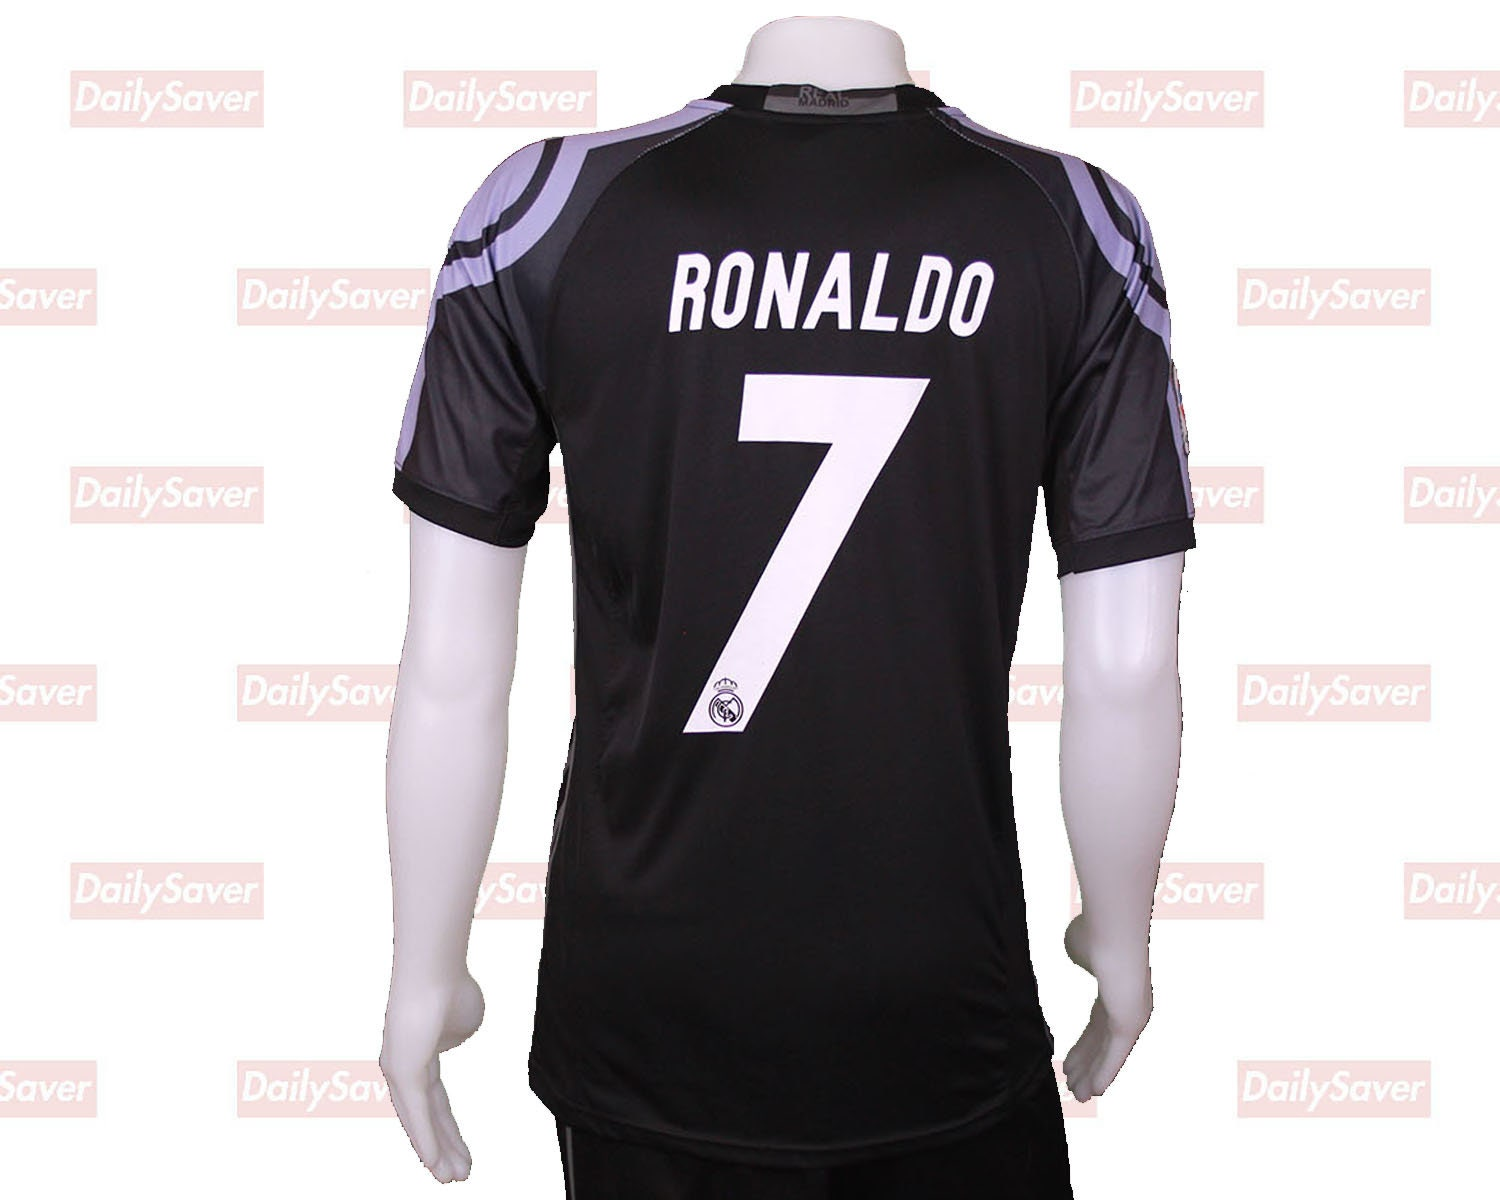 new style dc3d1 c4df7 Christiano Ronaldo Jersey Real Madrid Jersey Vintage Real Madrid Rare Black  Fly Emirates Jersey Black Ronaldo Jersey futbol jersey soccer